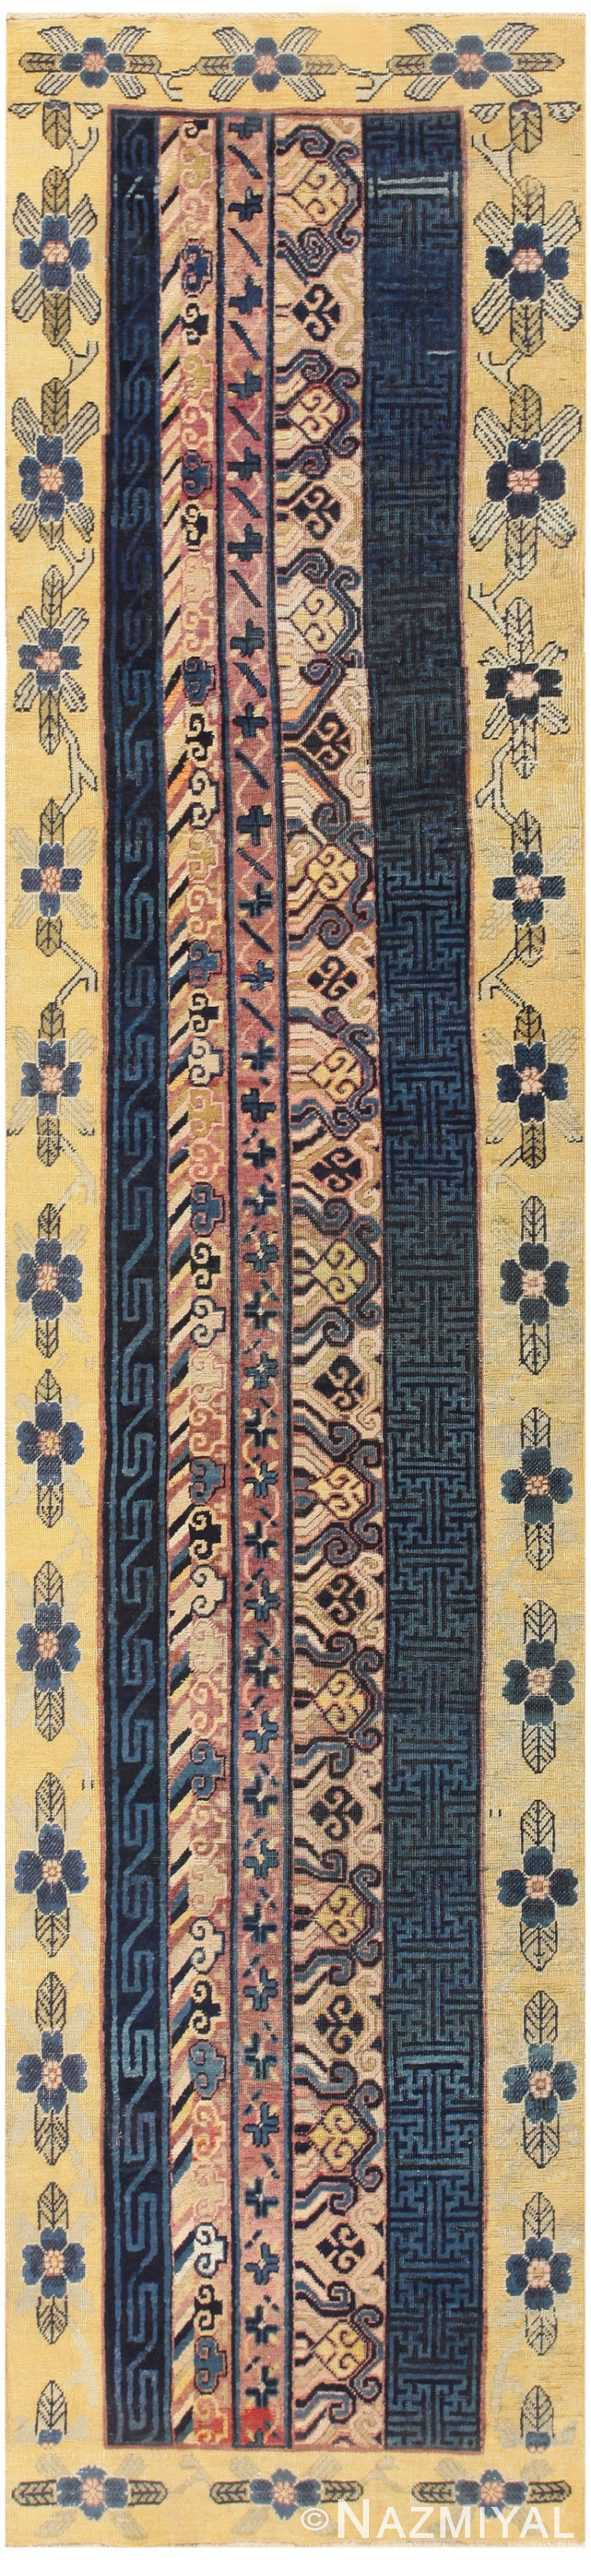 Antique Khotan Runner Rug from East Turkestan 48427 Nazmiyal